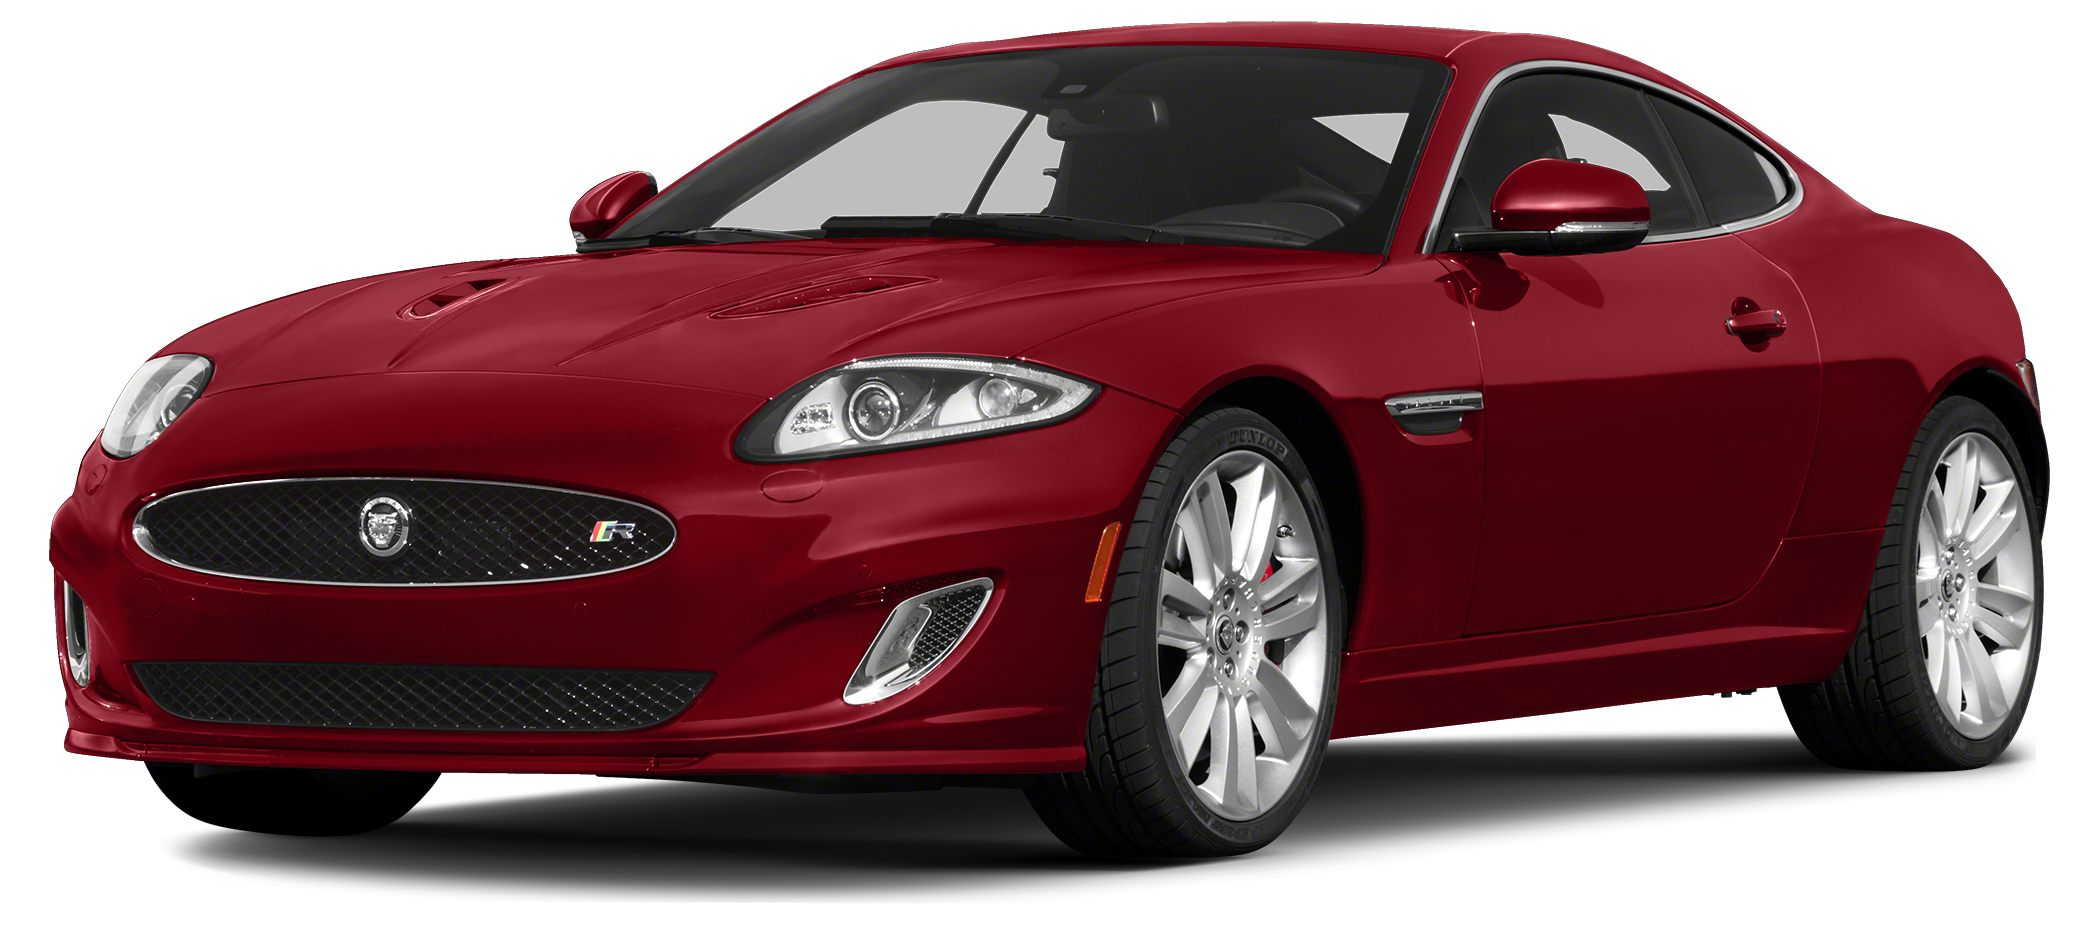 2015 Jaguar XK XKR 50L AJ-V8 Gen III DOHC 32V Supercharged 6-Speed Automatic with Overdrive Ita